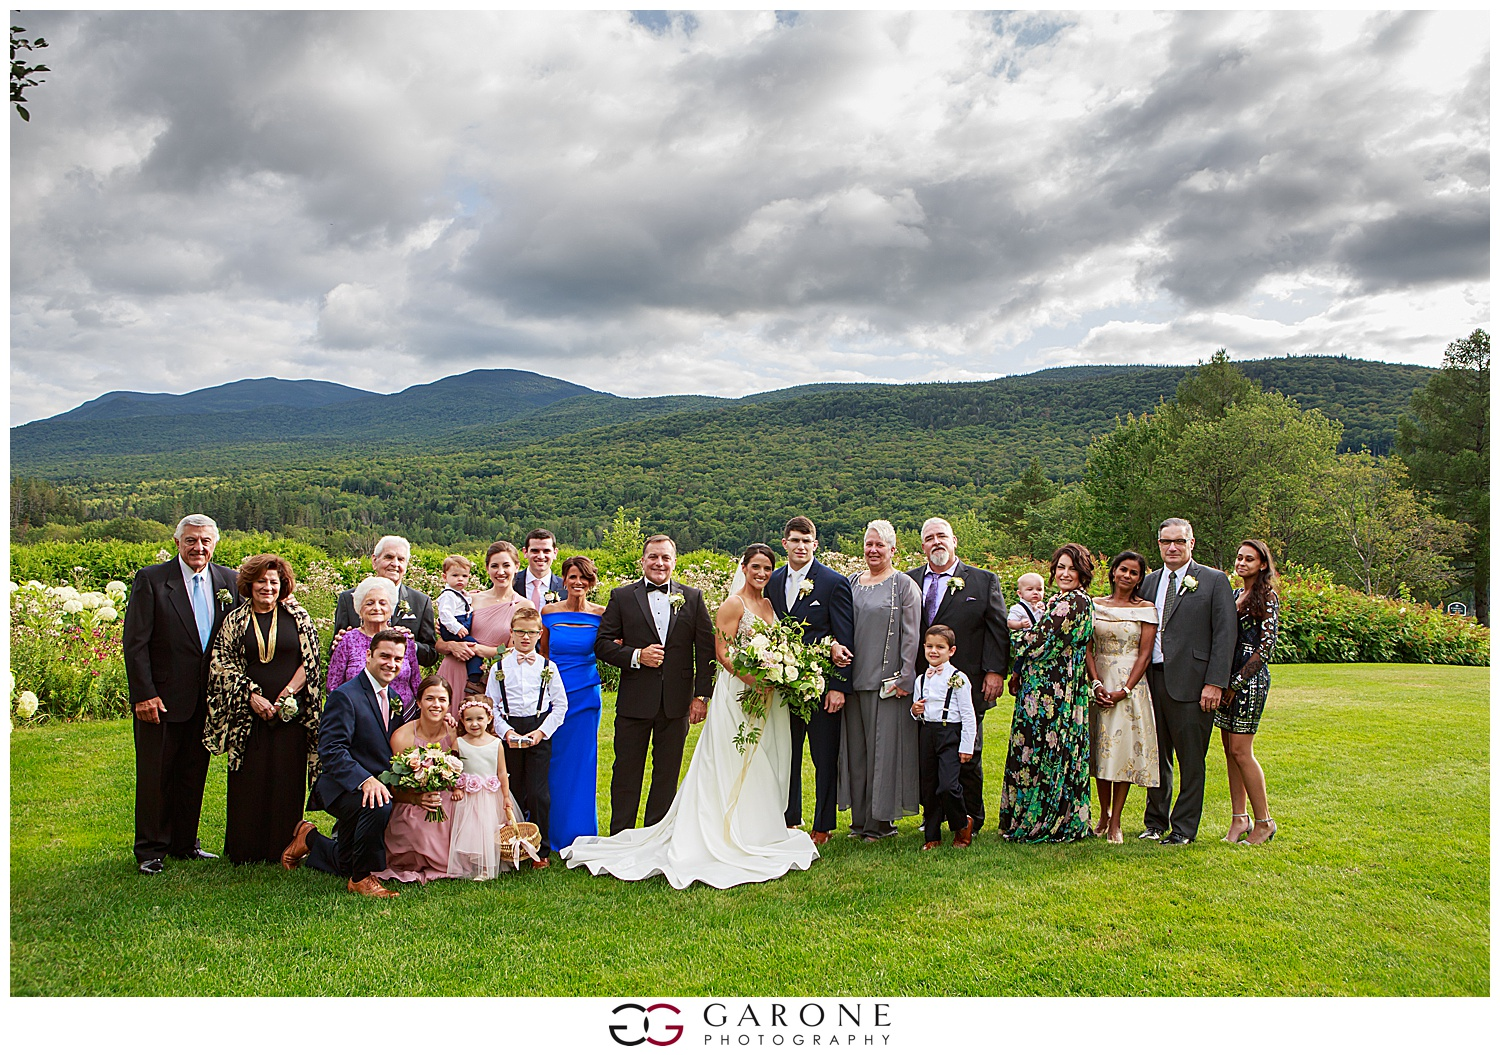 Omni_Mount_Washington_hotel_Wedding_White_Mountain_Wedding_Garone_Photography_0022.jpg